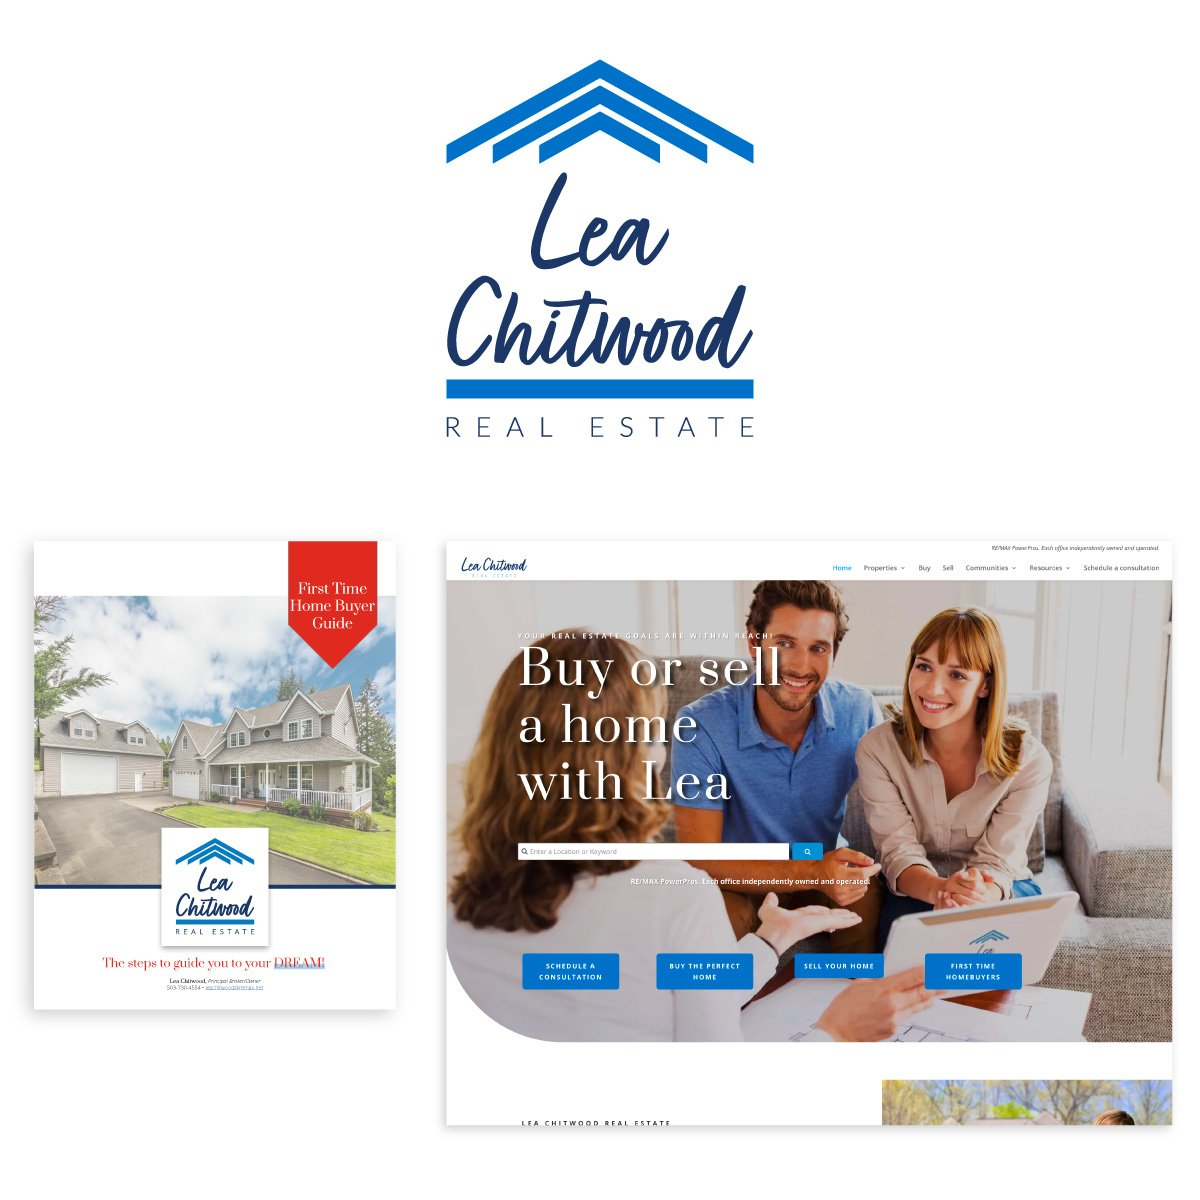 Lea Chitwood Real Estate visual brand and website design